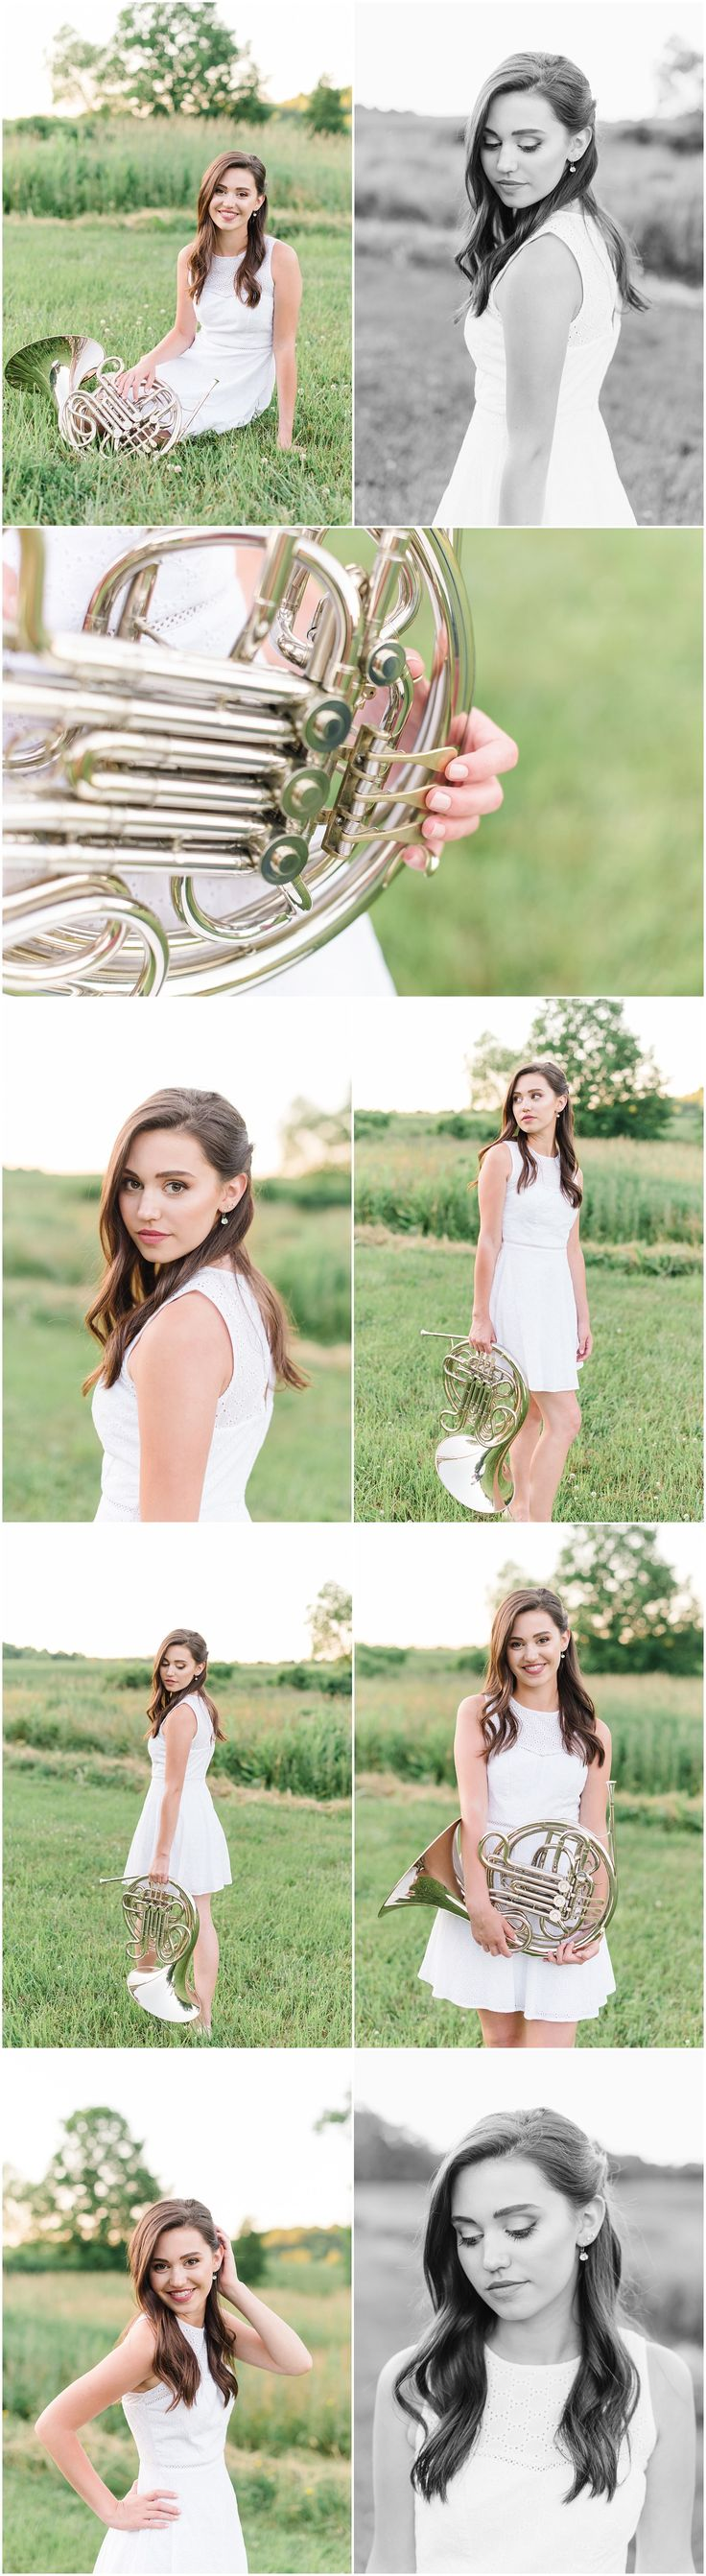 Modern Senior Pictures, French Horn – Wadsworth, OH Senior Photographer…